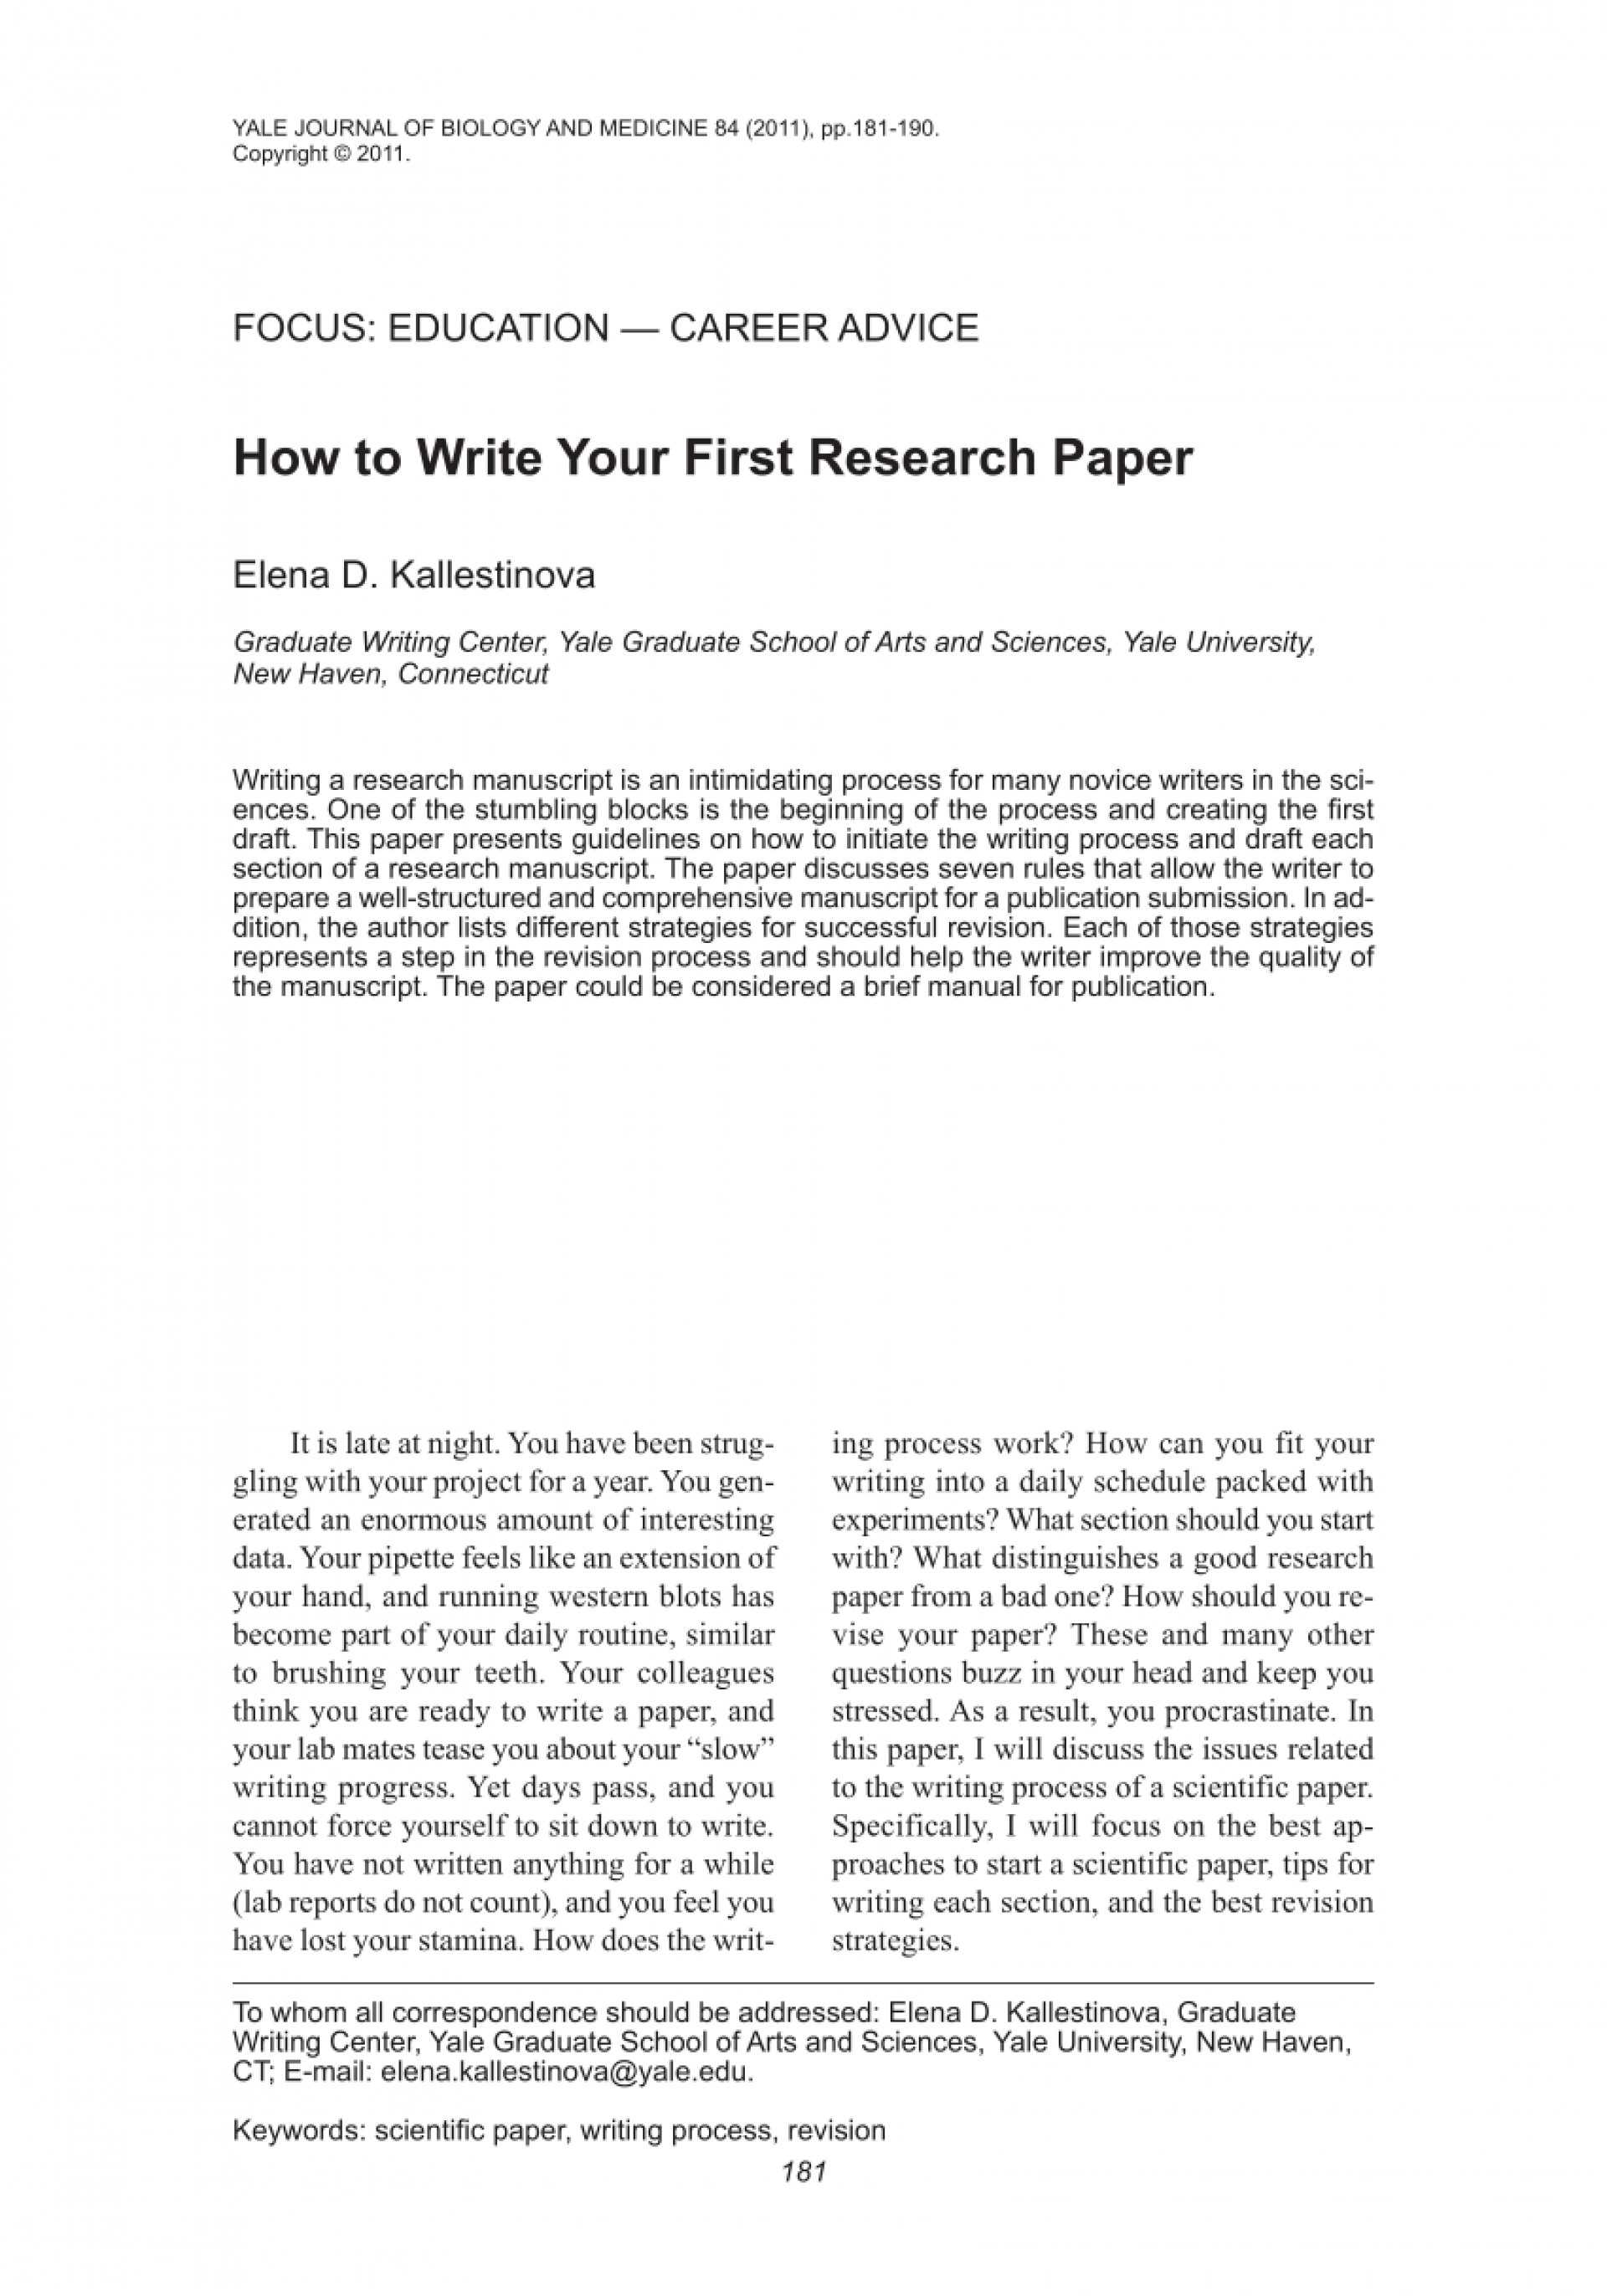 010 Research Paper Staggering A Writing Format Title Of Thesis Example 1920